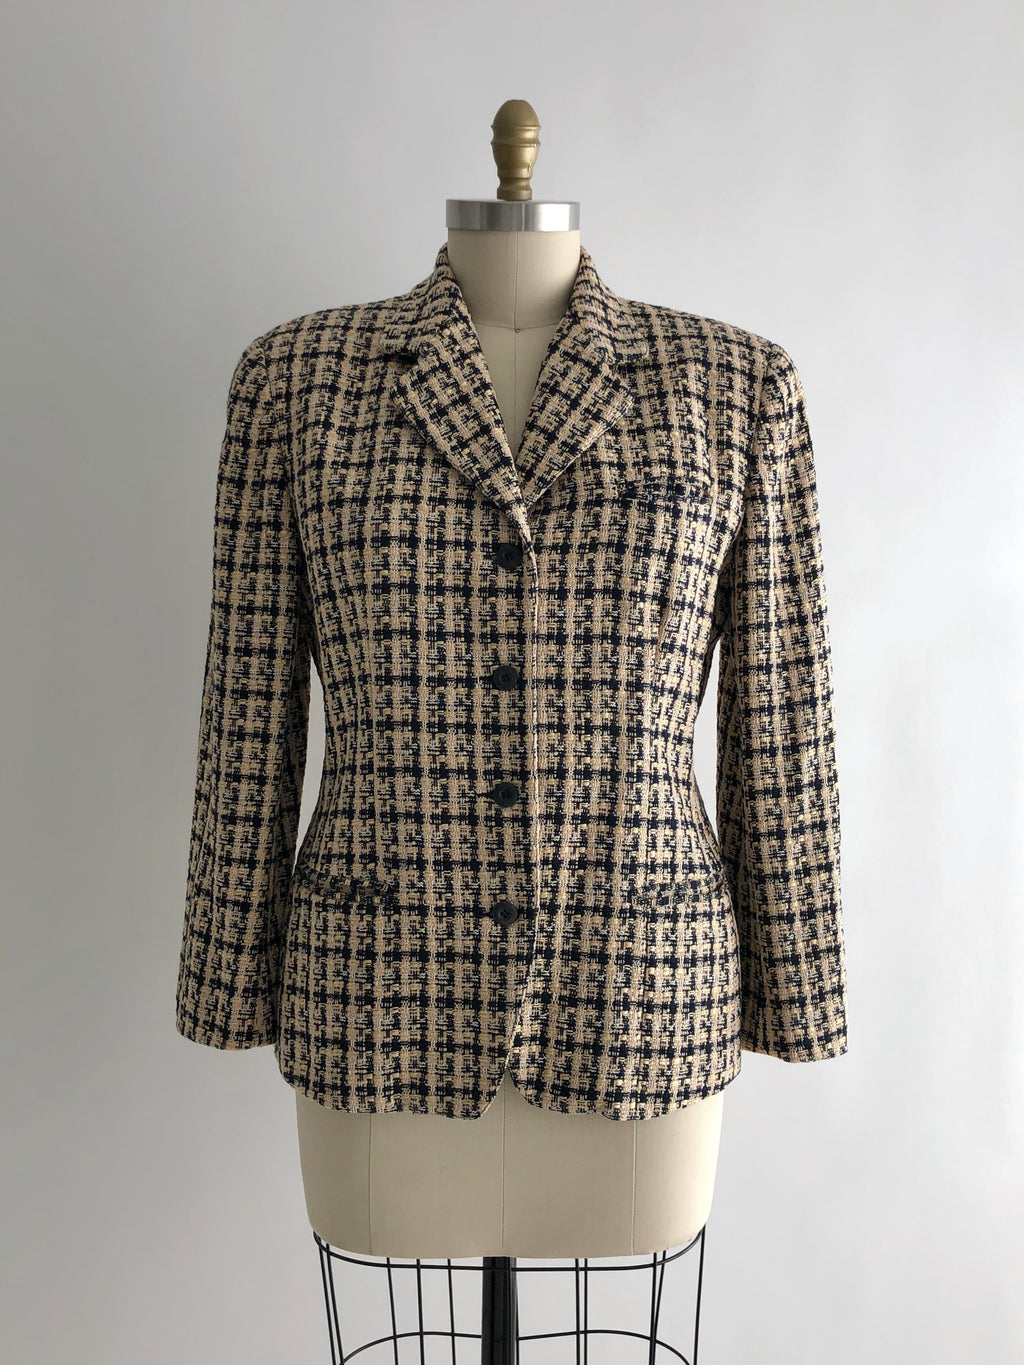 Vintage 80s Plaid Cotton and Wool Single Breasted Blazer by Anne Klein